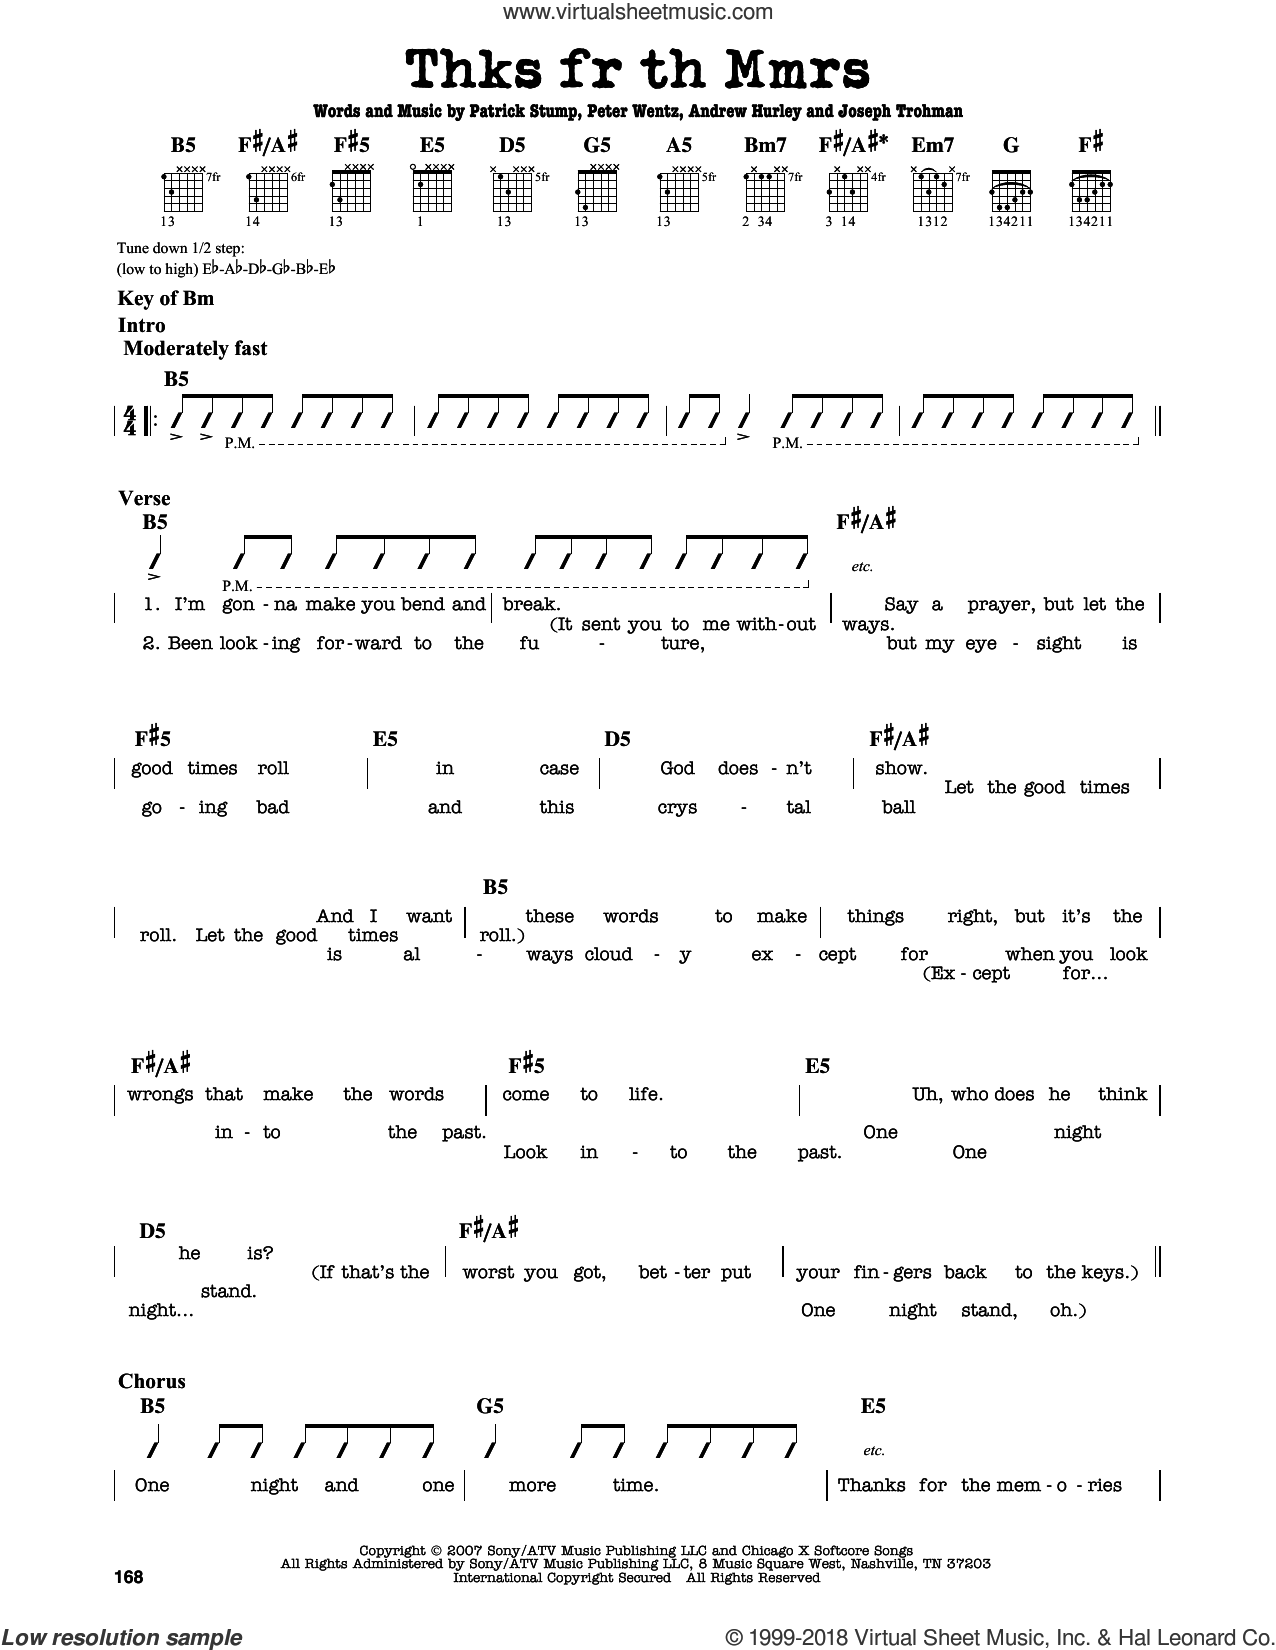 Thnks Fr Th Mmrs sheet music for guitar solo (lead sheet) by Fall Out Boy, Andrew Hurley, Joseph Trohman, Patrick Stump and Peter Wentz, intermediate guitar (lead sheet)